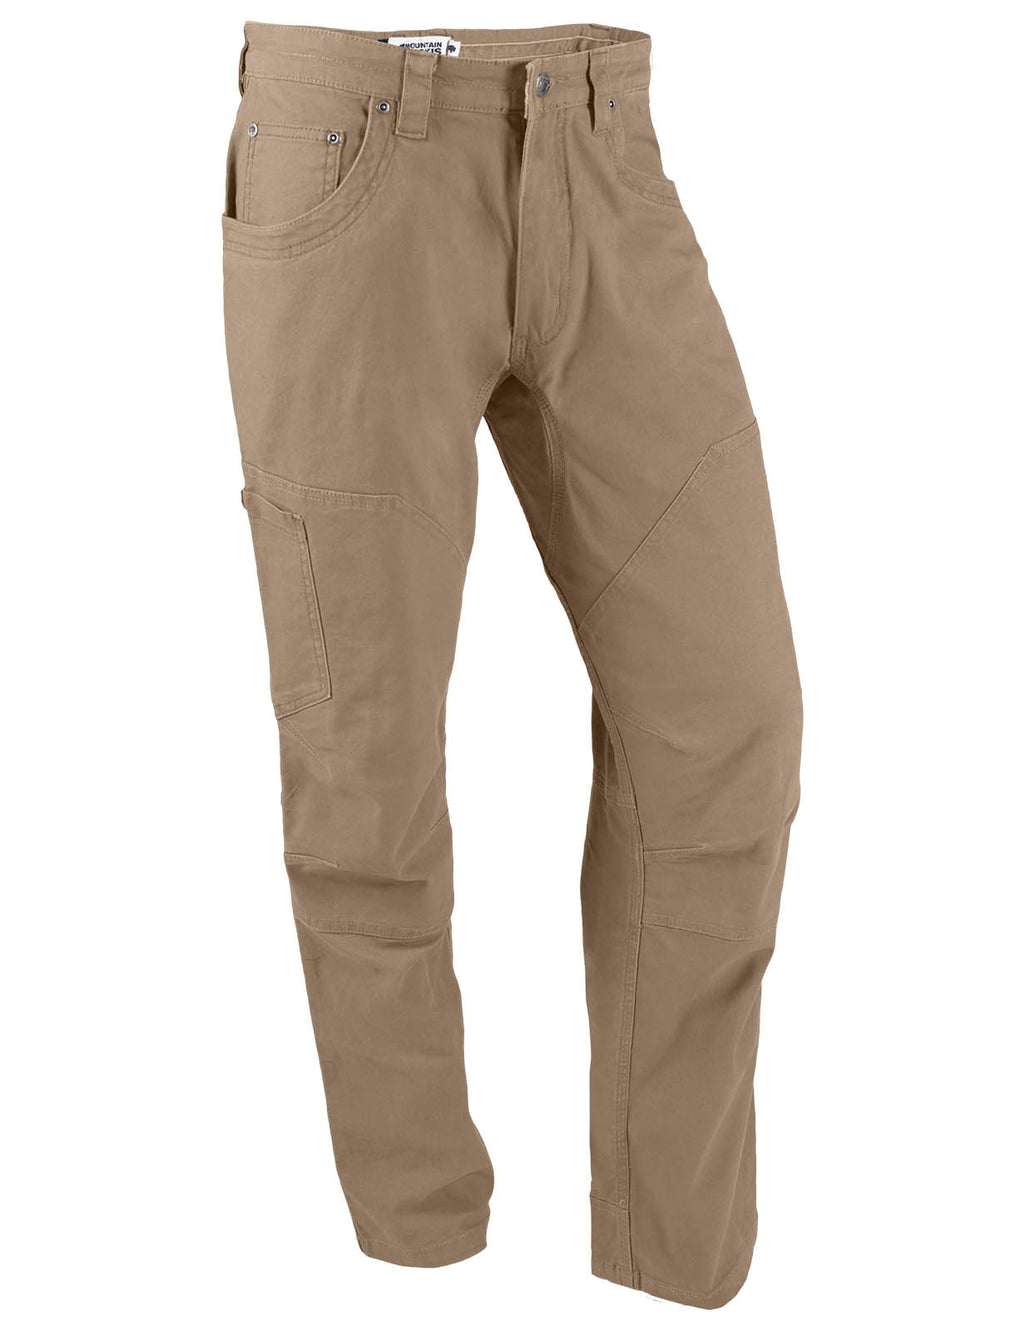 "Men's Camber 107 Pant | Mountain Khakis | Durability, style and practicality. Triple-stitched seams, chap-style double layer knees, ""mudflap"" reinforced heel cuffs, reinforced pocket bags, angled back pocket, and quick-draw cell phone pocket with snap closure on right thigh."